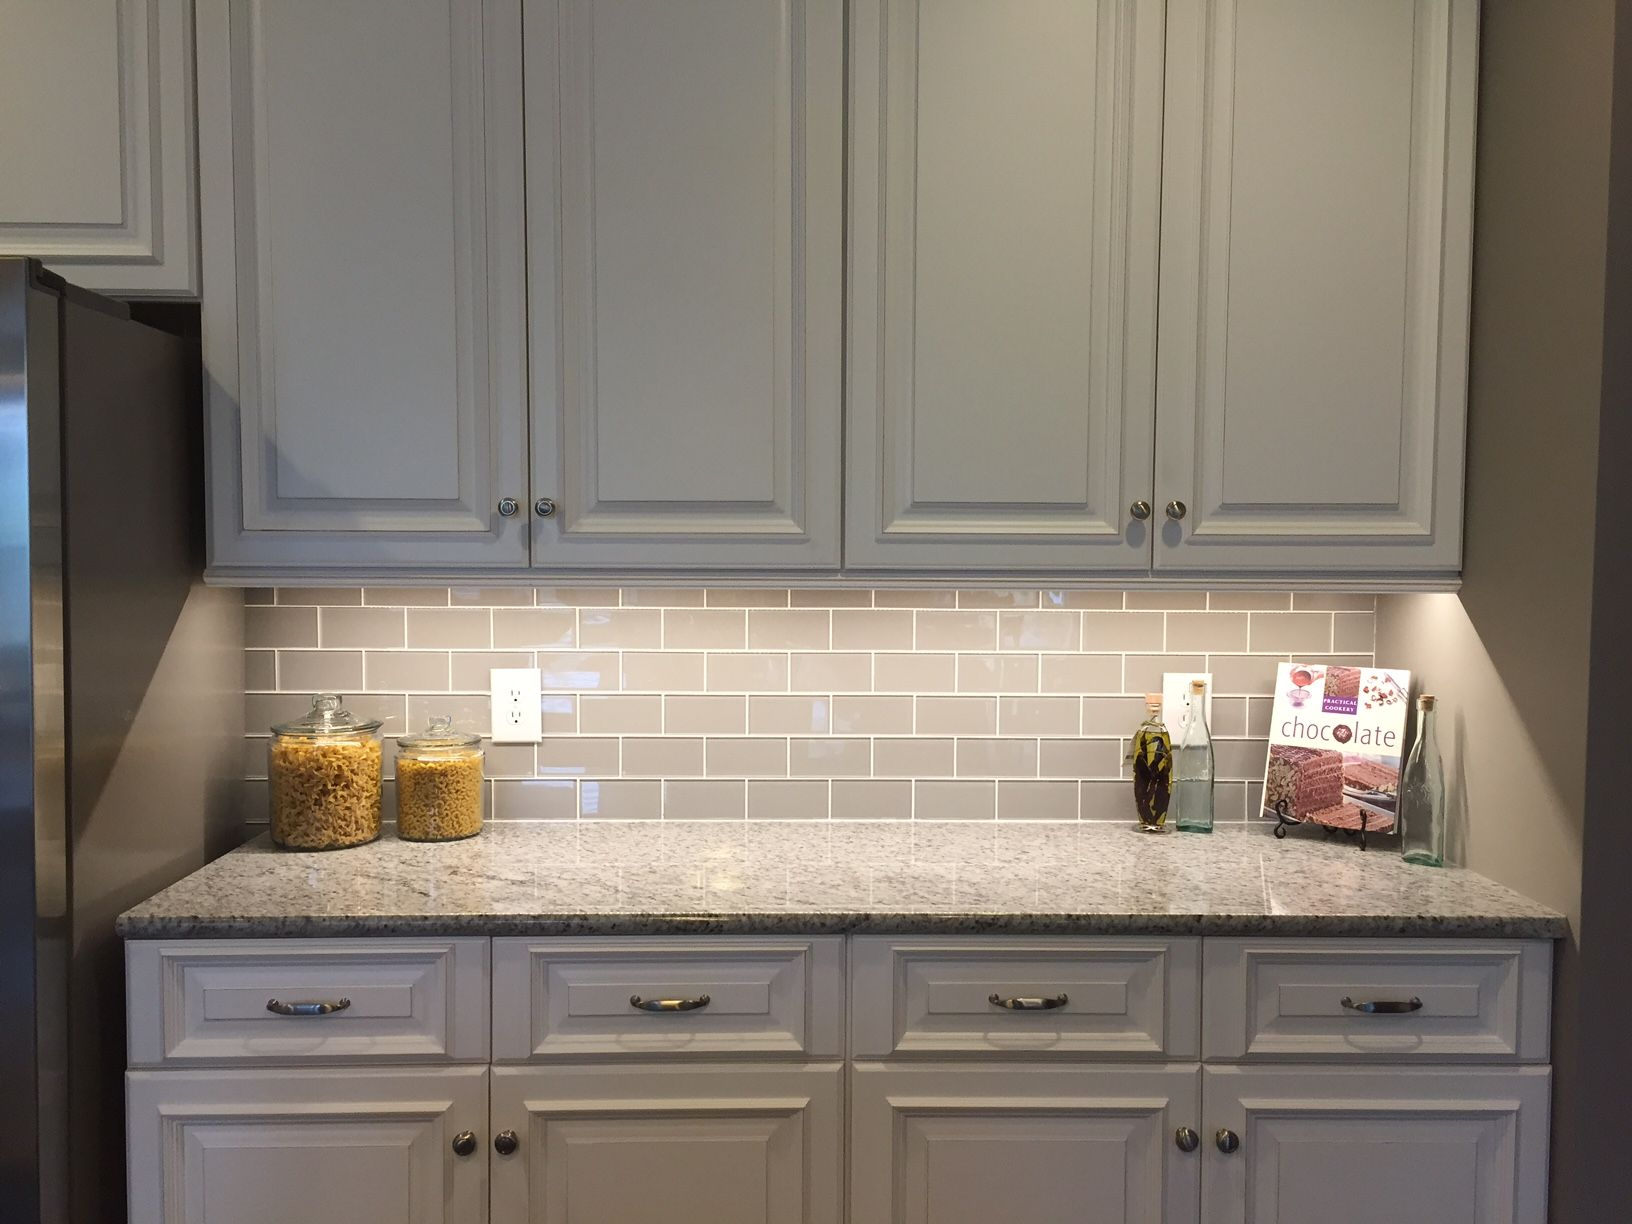 Smoke Grey Gl Subway Tile Backsplash Https Www Subwaytileoutlet